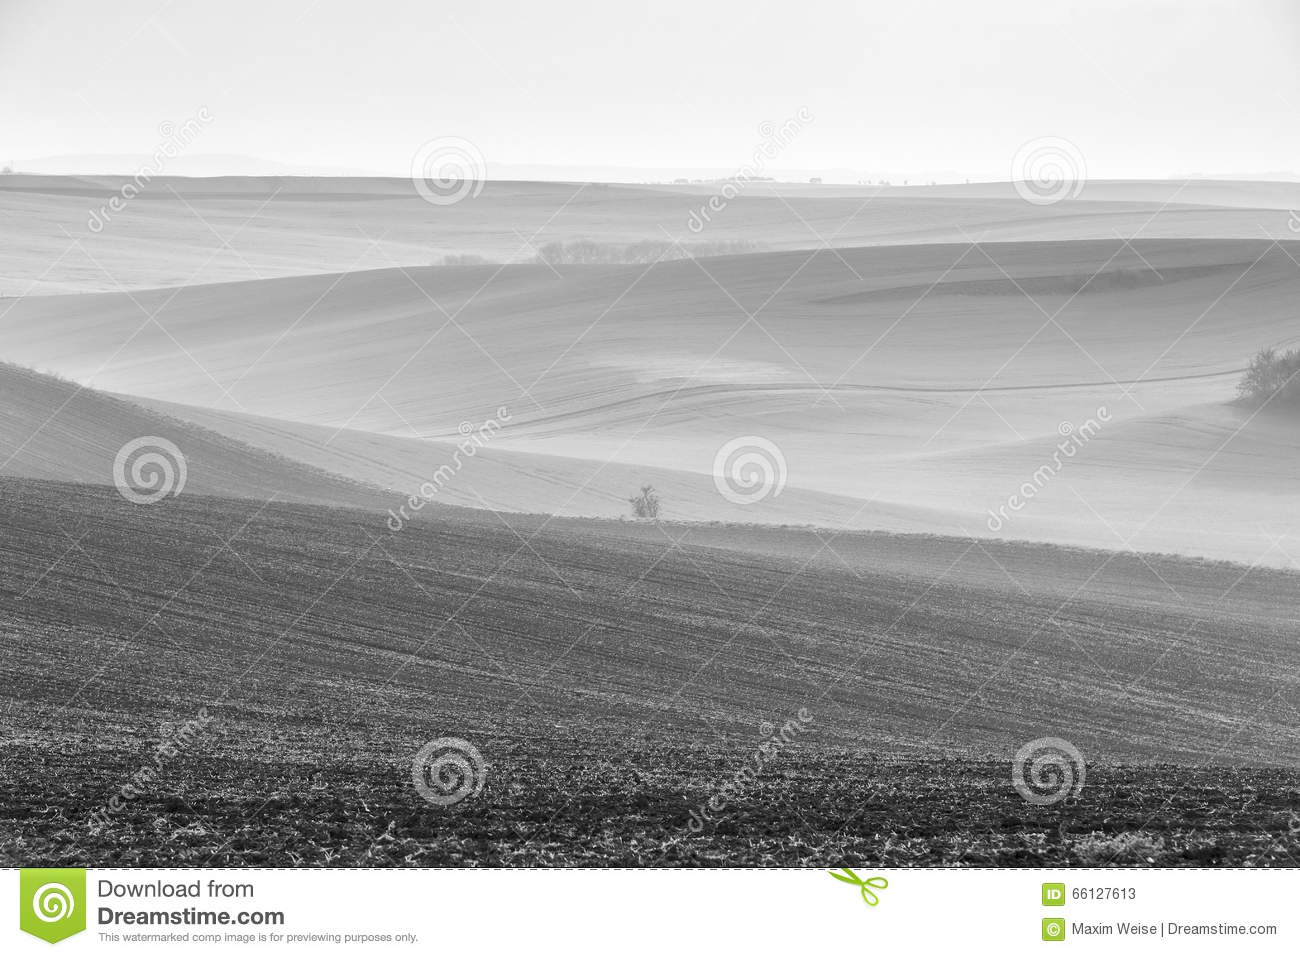 Spring. April. Moravia fields in a cloudy day